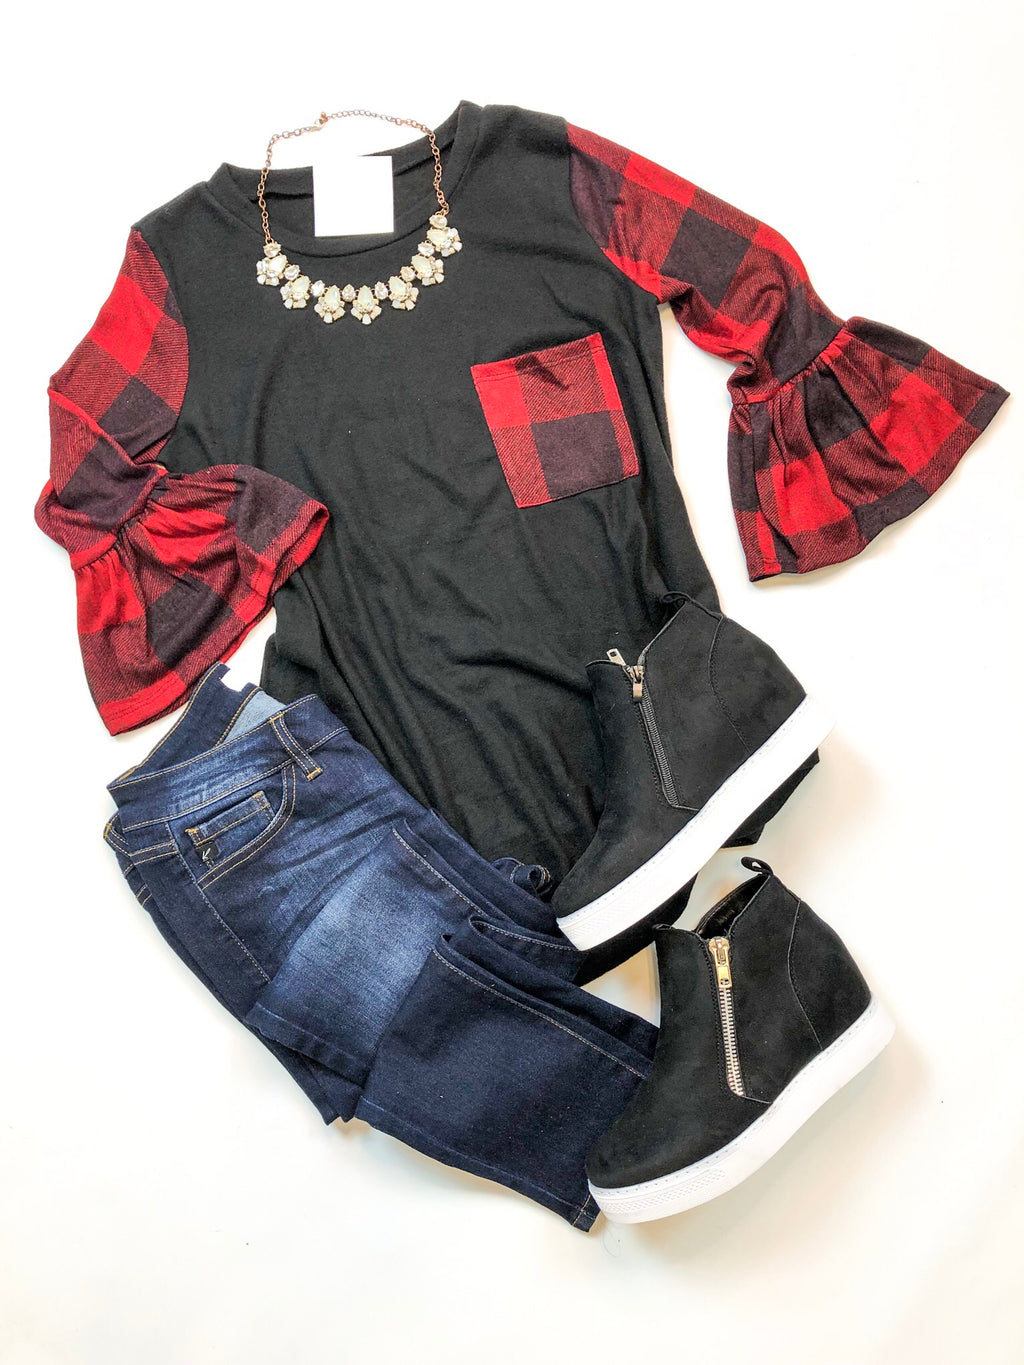 Buffalo Plaid Contrast Top with Ruffle Sleeves